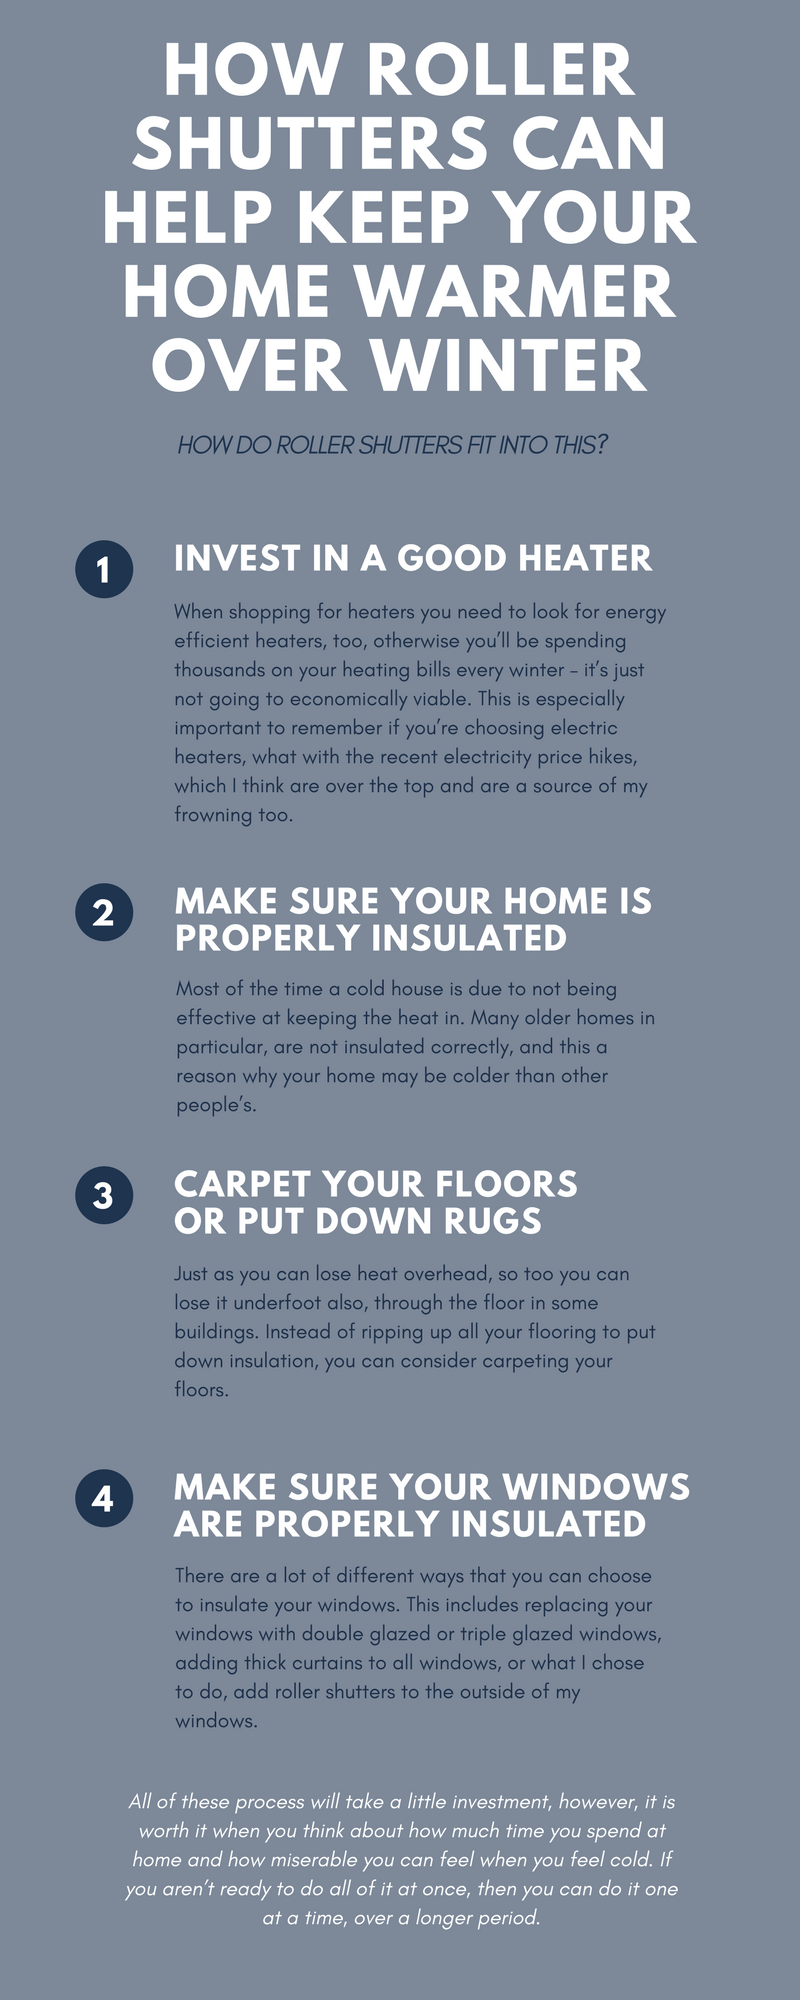 How Roller Shutters Can Help to Keep Your Home Warmer Over Winter